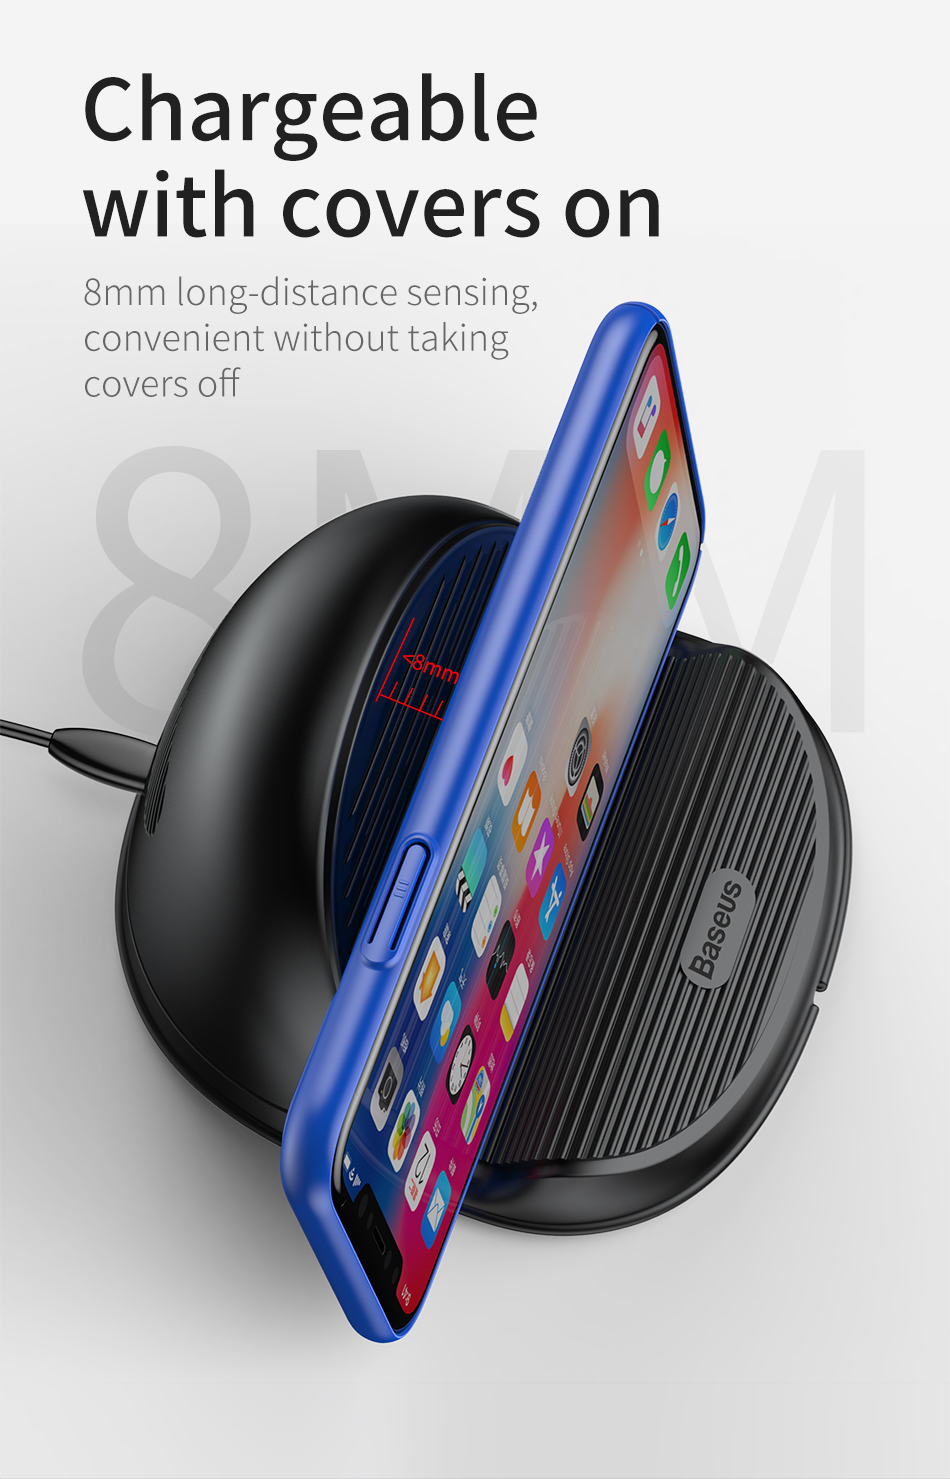 Baseus Desktop QI Wireless Charger 10W for iPhone XS Max XR Samsung S9 Note9 Huawei